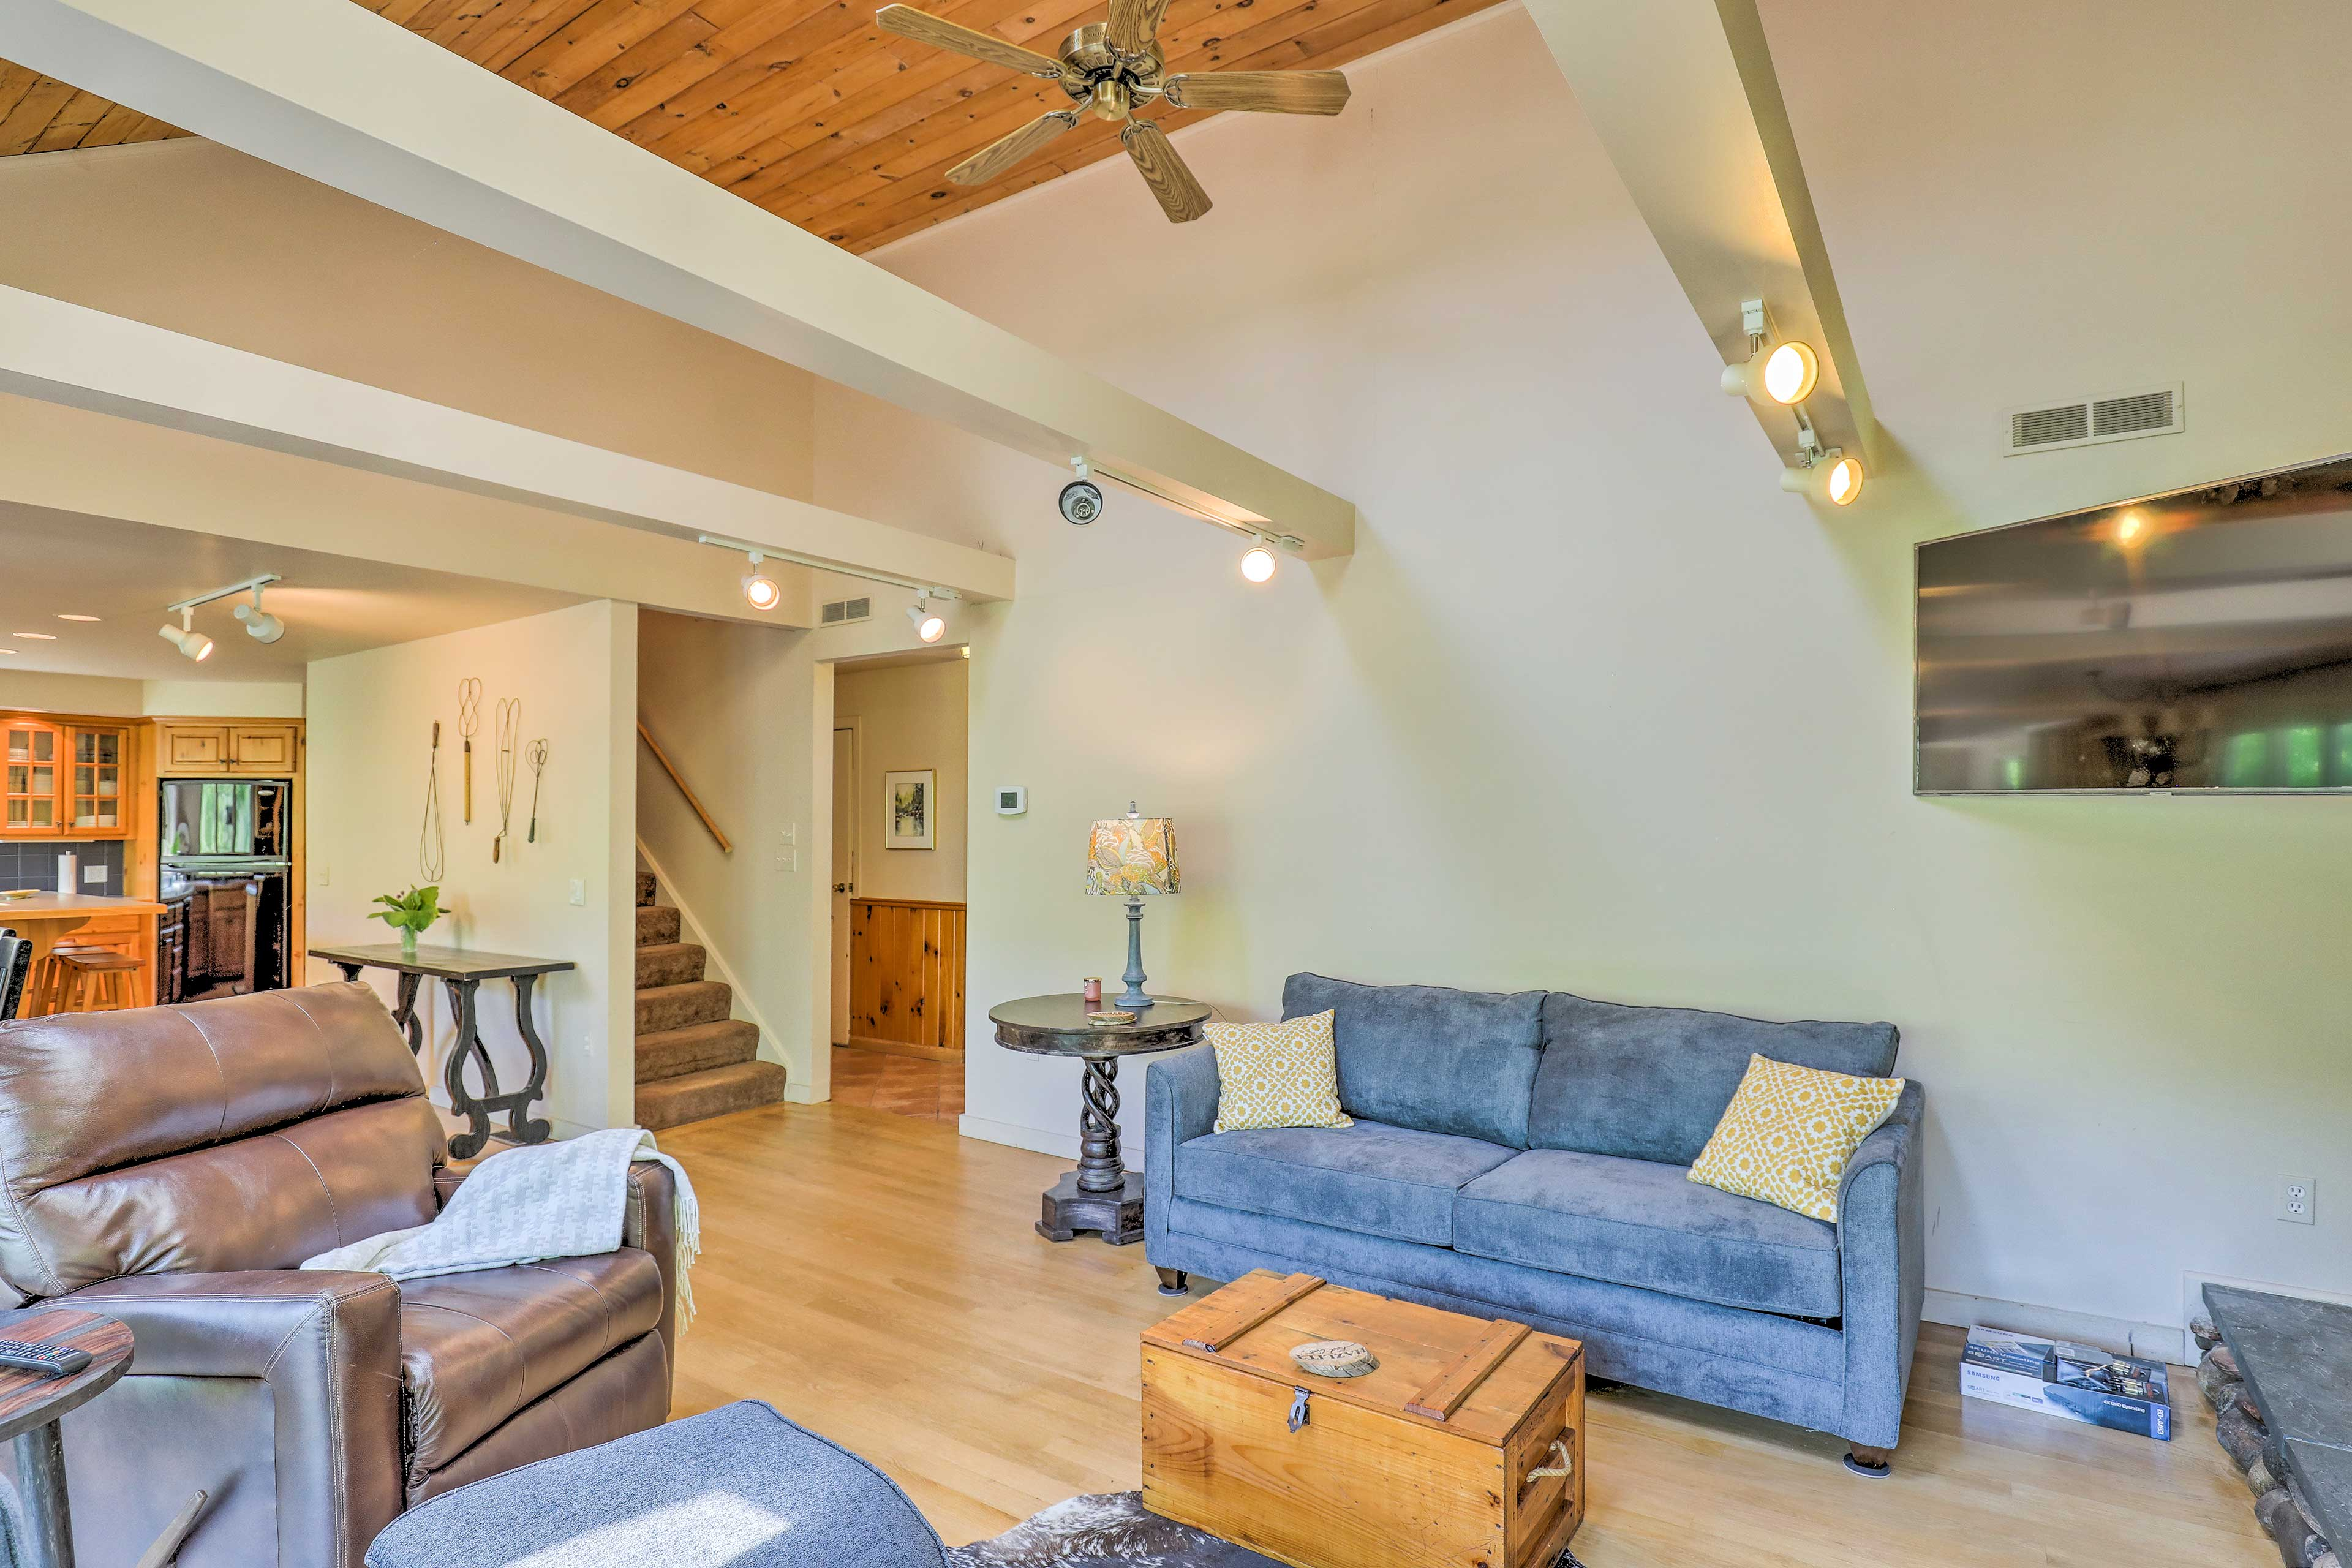 The open living space hosts comfortable seating and a flat-screen satellite TV.